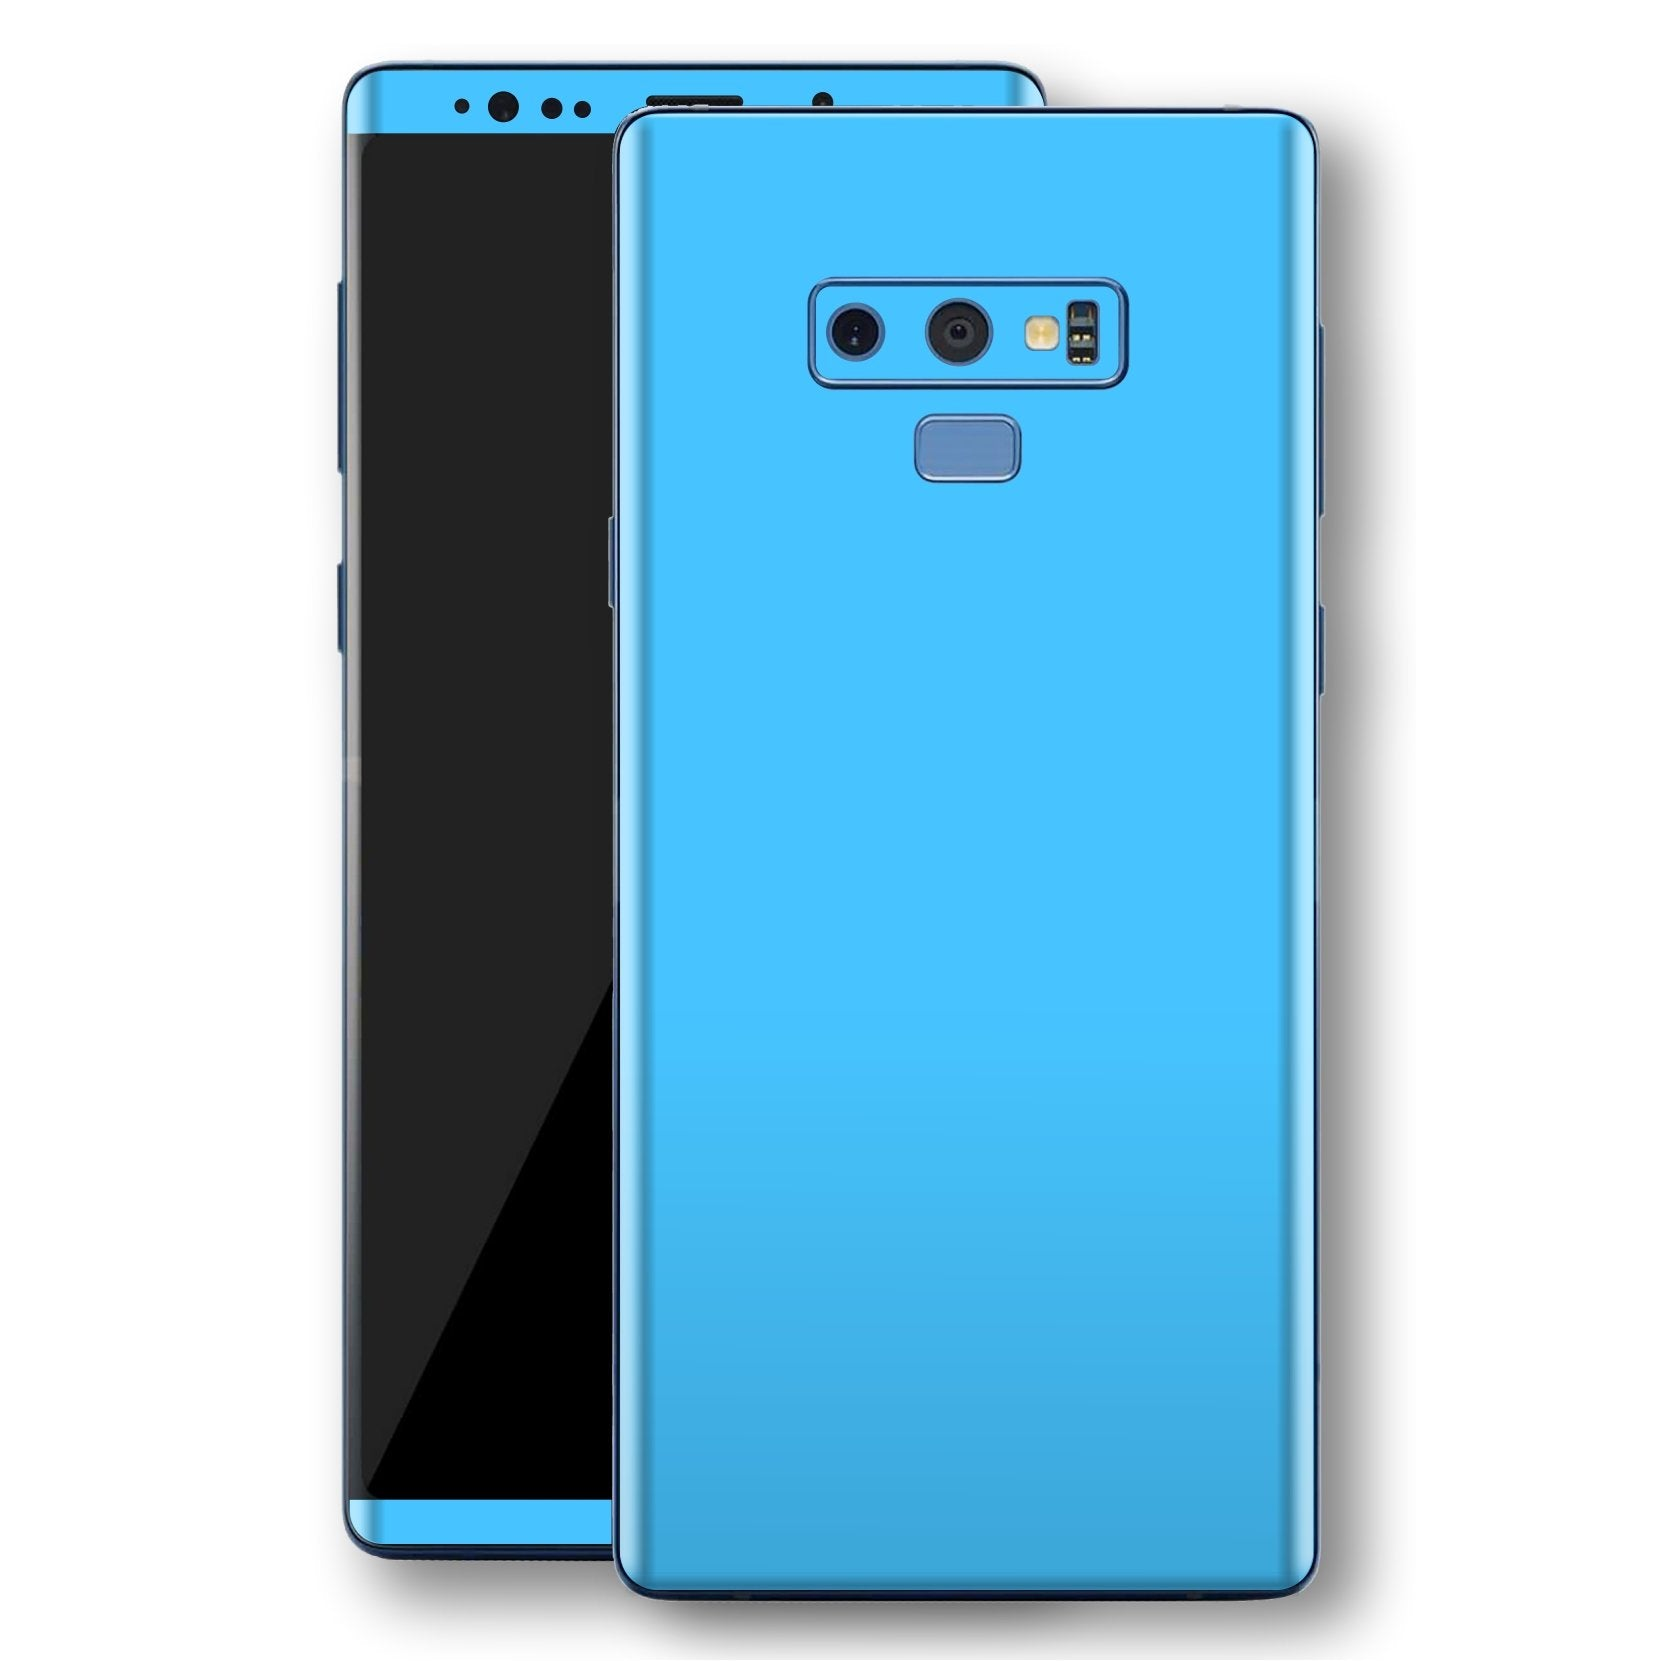 Samsung Galaxy NOTE 9 Blue Matt Skin, Decal, Wrap, Protector, Cover by EasySkinz | EasySkinz.com